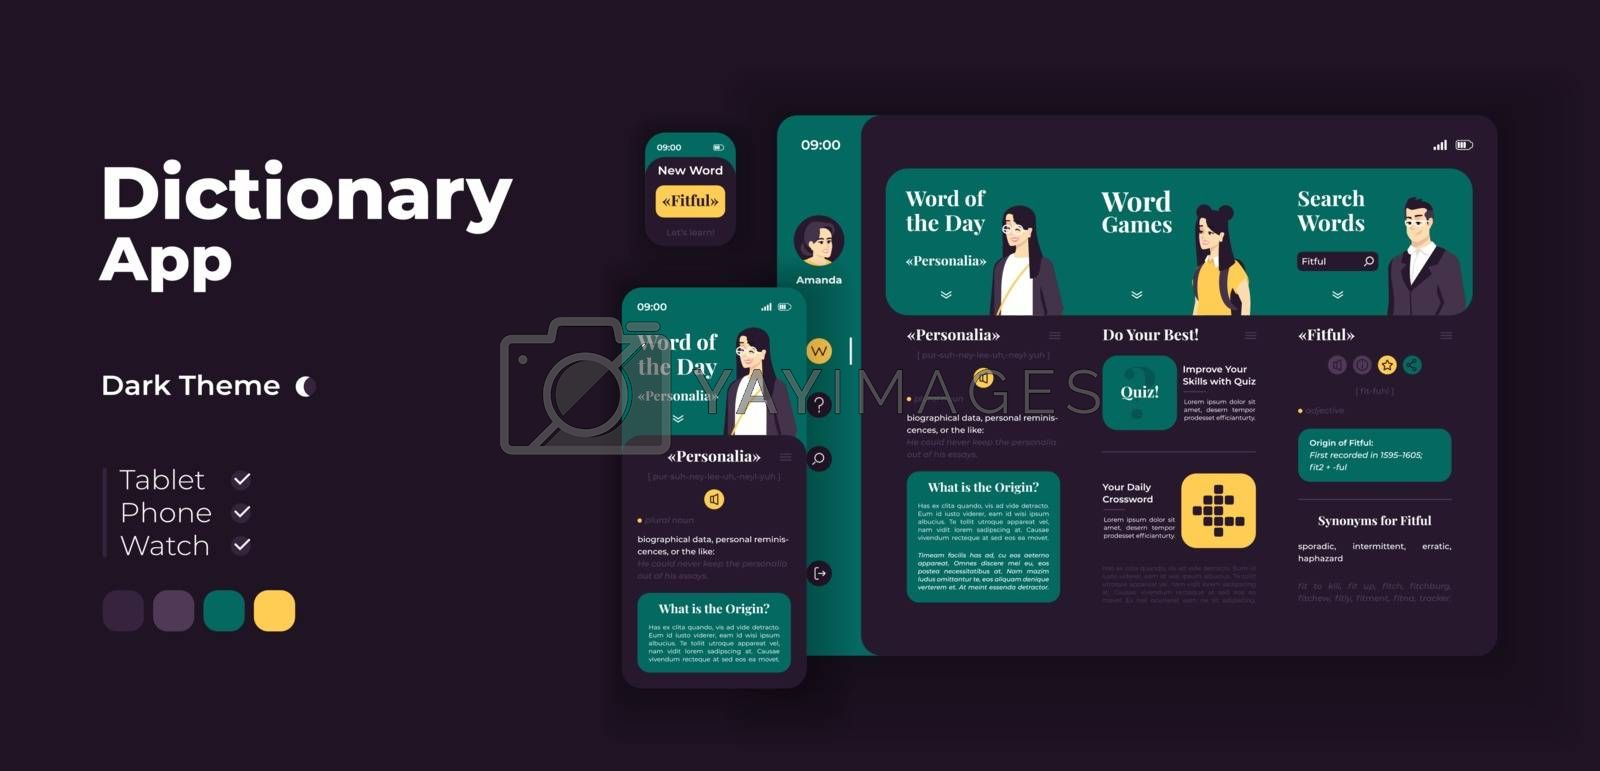 E learning app screen vector adaptive design template. Word games. Online dictionary application night mode interface with flat characters. Smartphone, tablet, smart watch cartoon UI